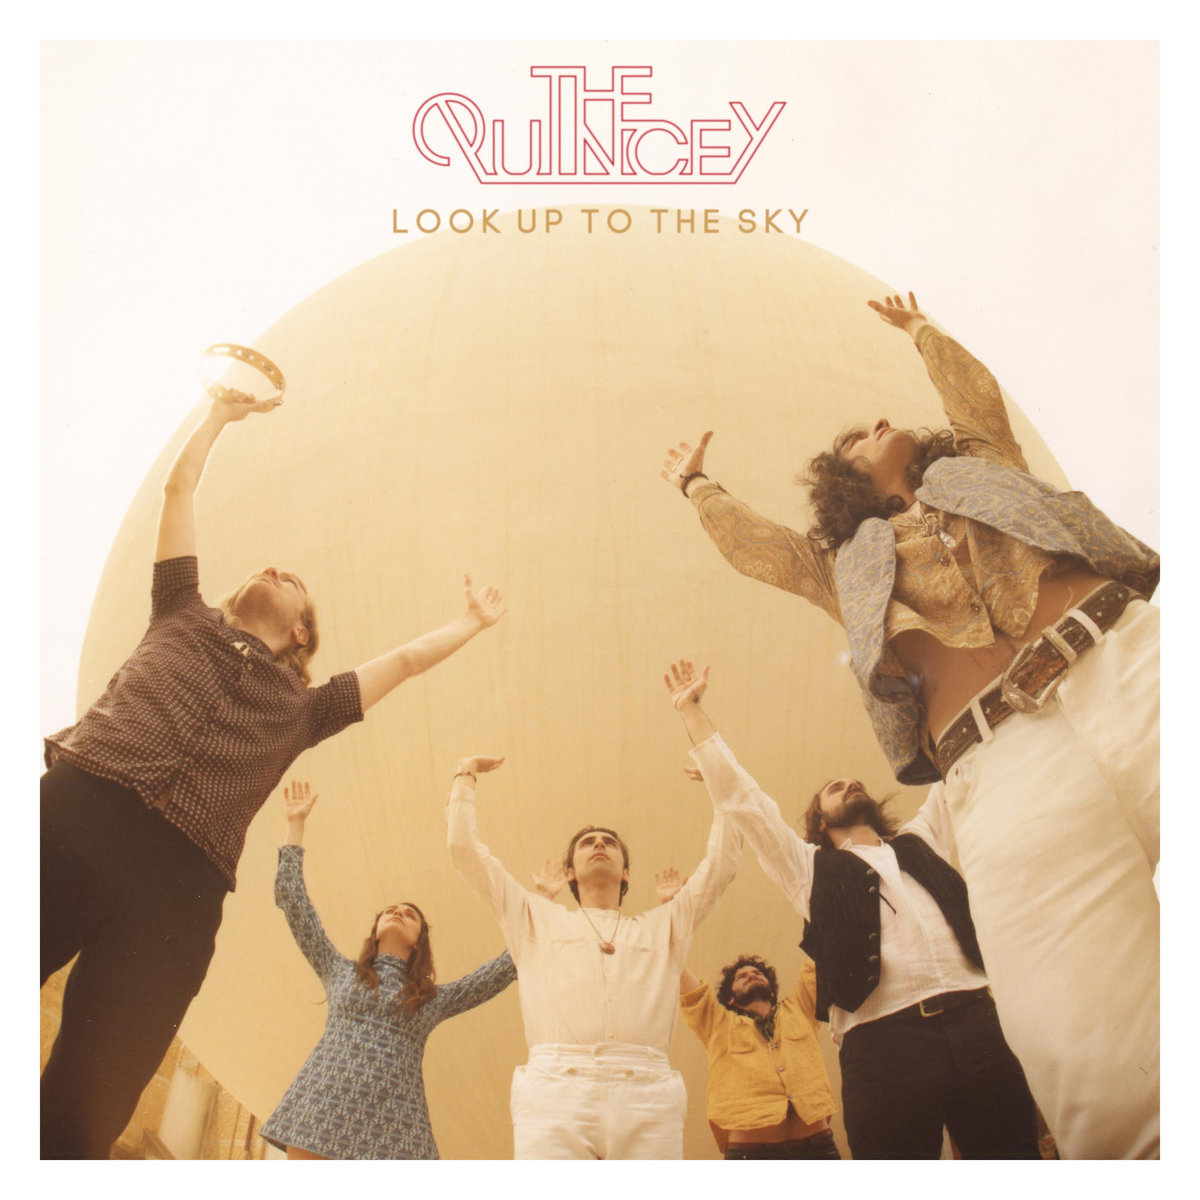 The Quincey - We Are The Quincey @ 'Look Up To The Sky' album (alternative, united kingdom)